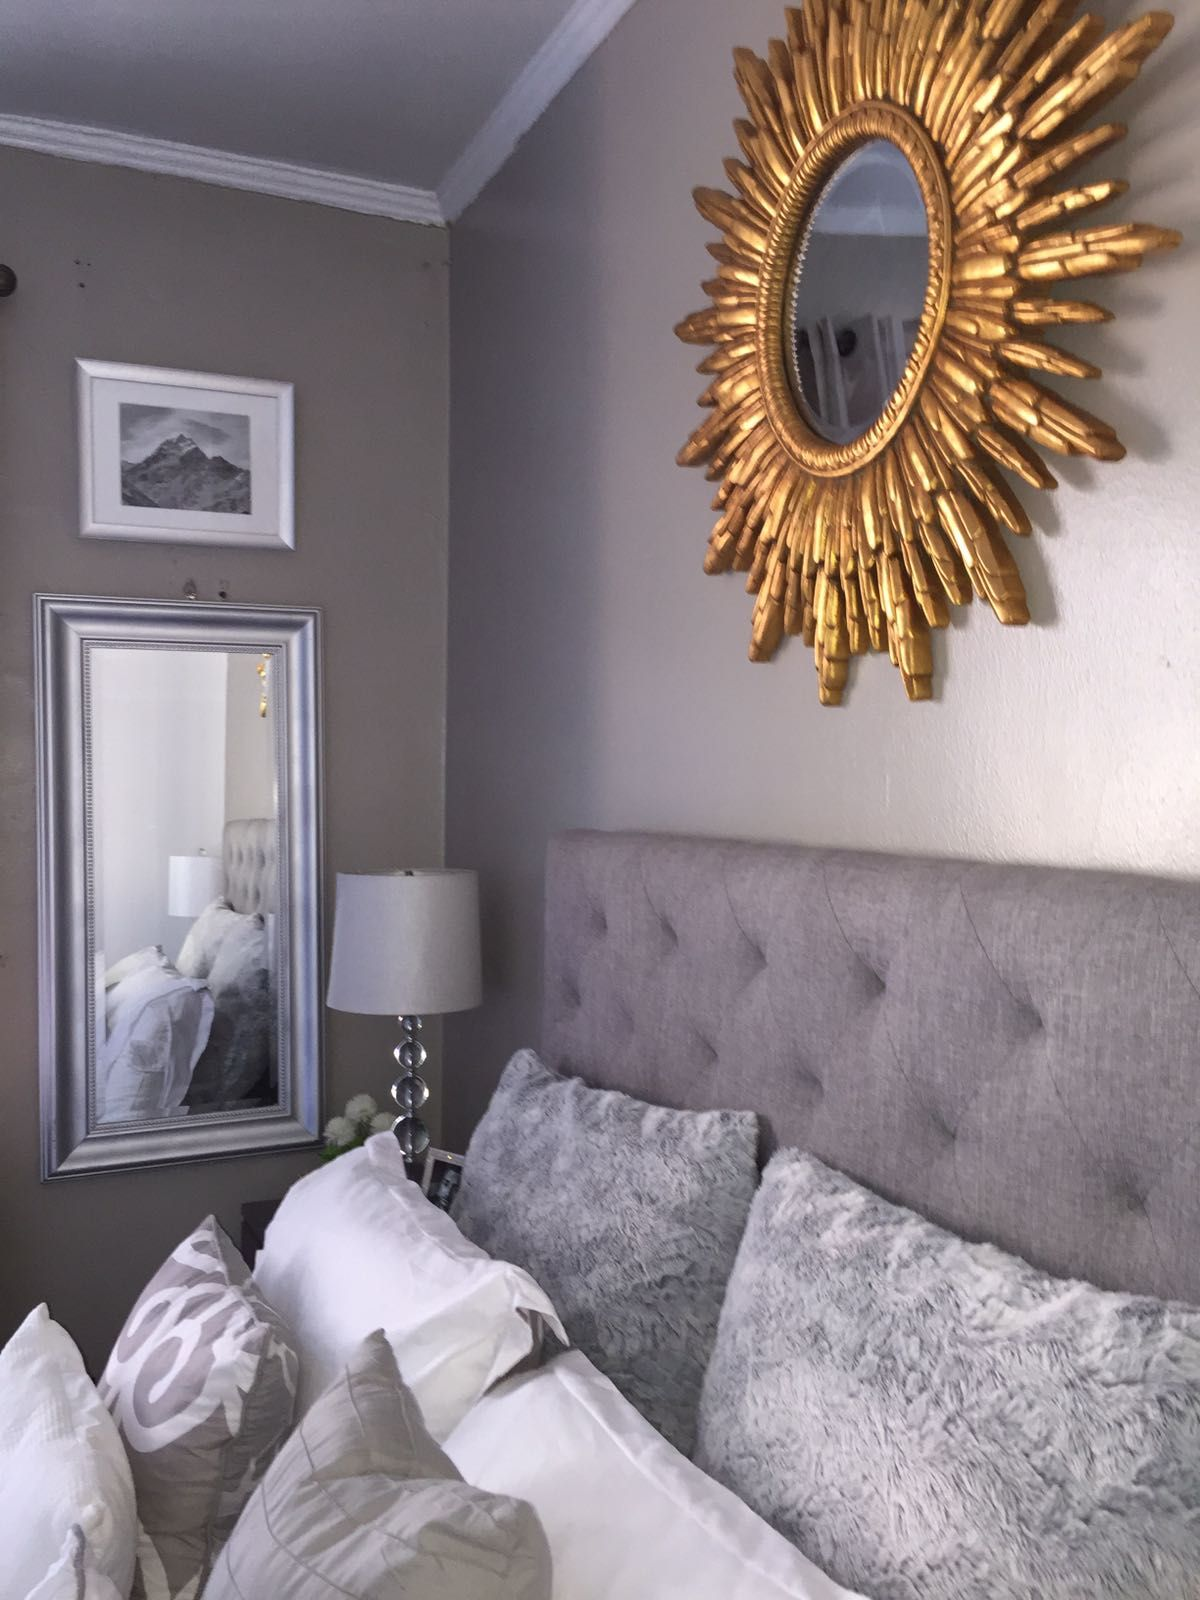 Grey And Gold Bedroom Decoration Decor Headboard Sunburst Mirror Modern Antique Starburst Wall